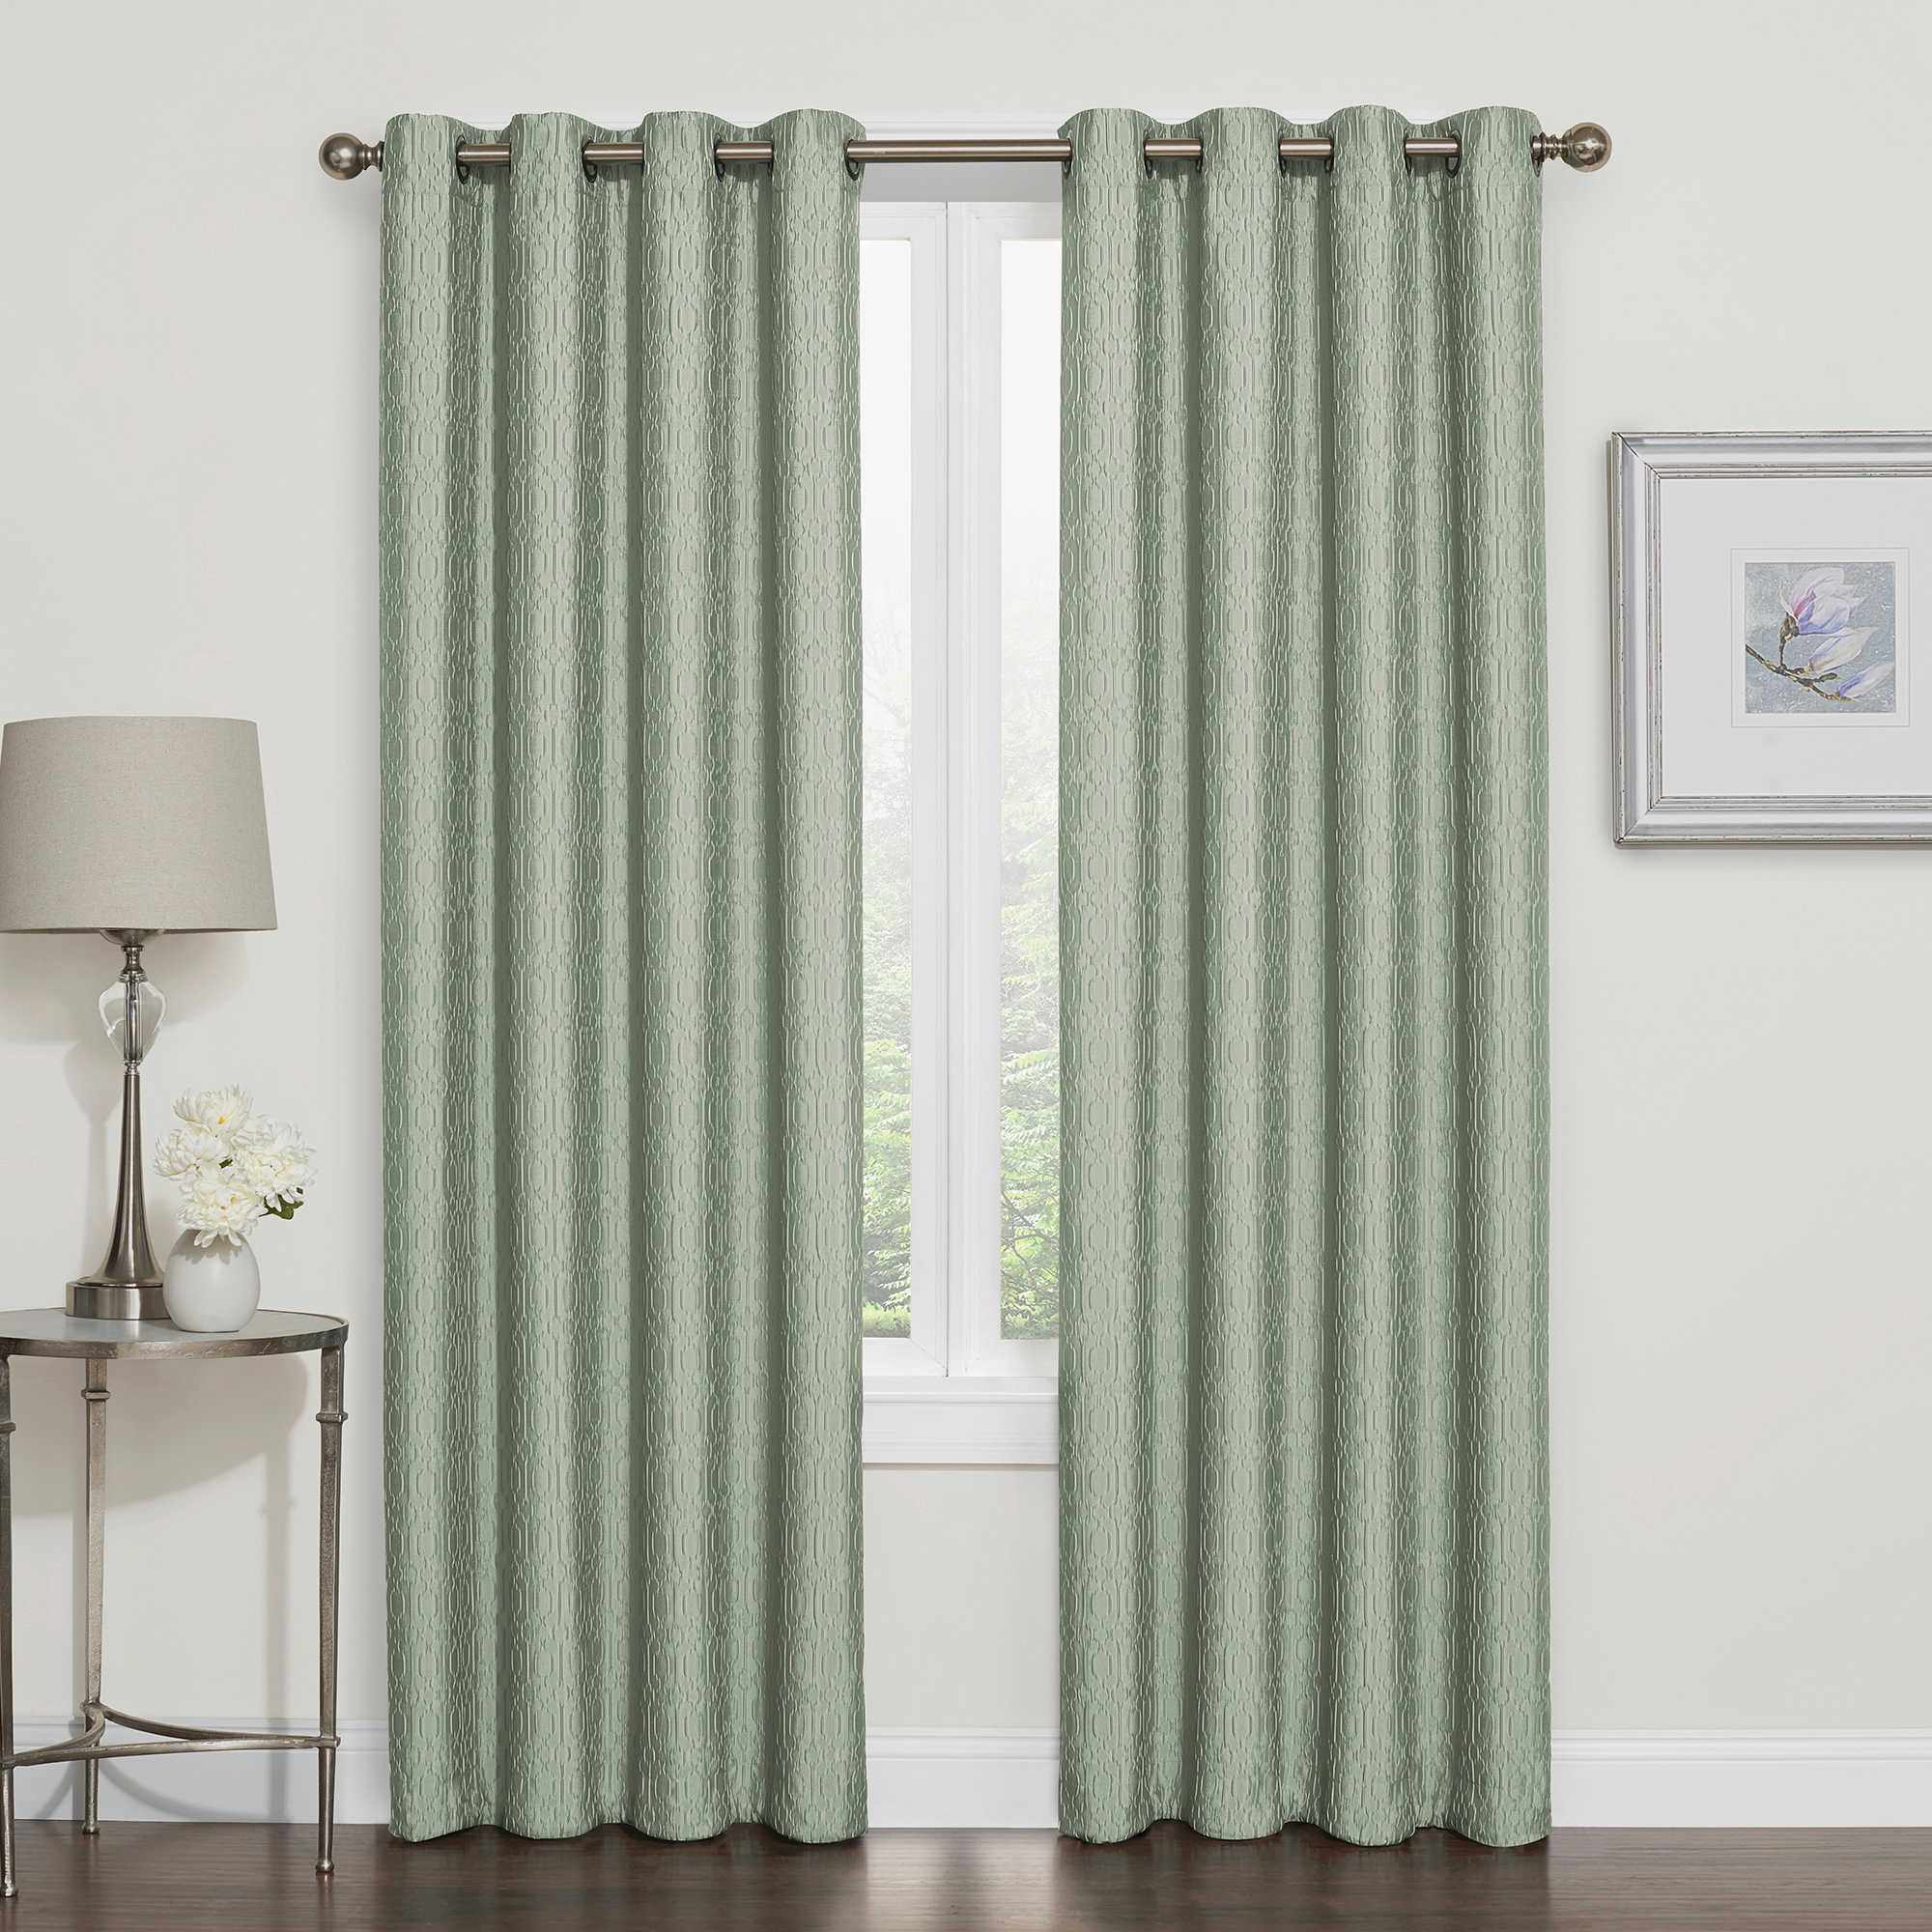 proportions in walmart curtains herringbone curtain ideas blue gold x and shower